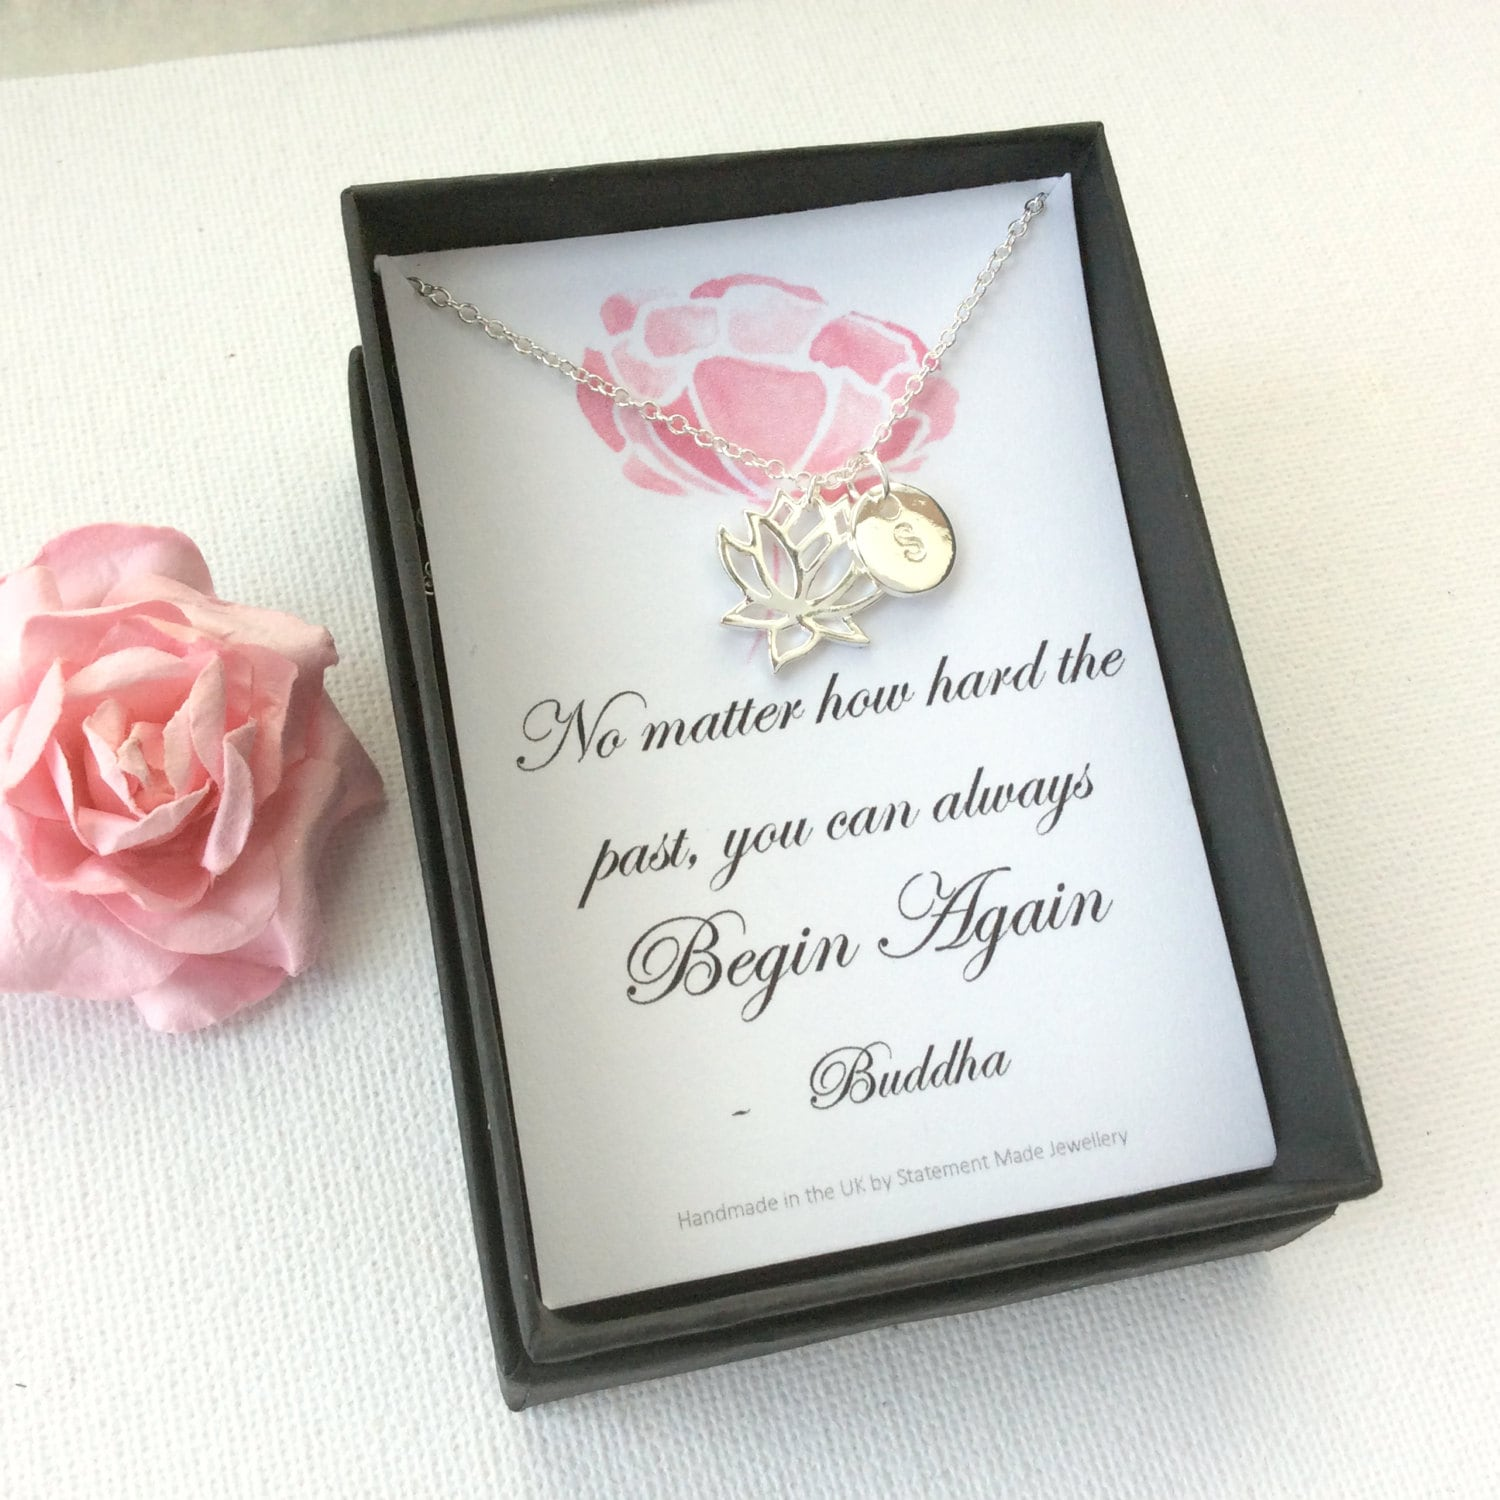 buddha quote buddha necklace lotus flower necklacemessage